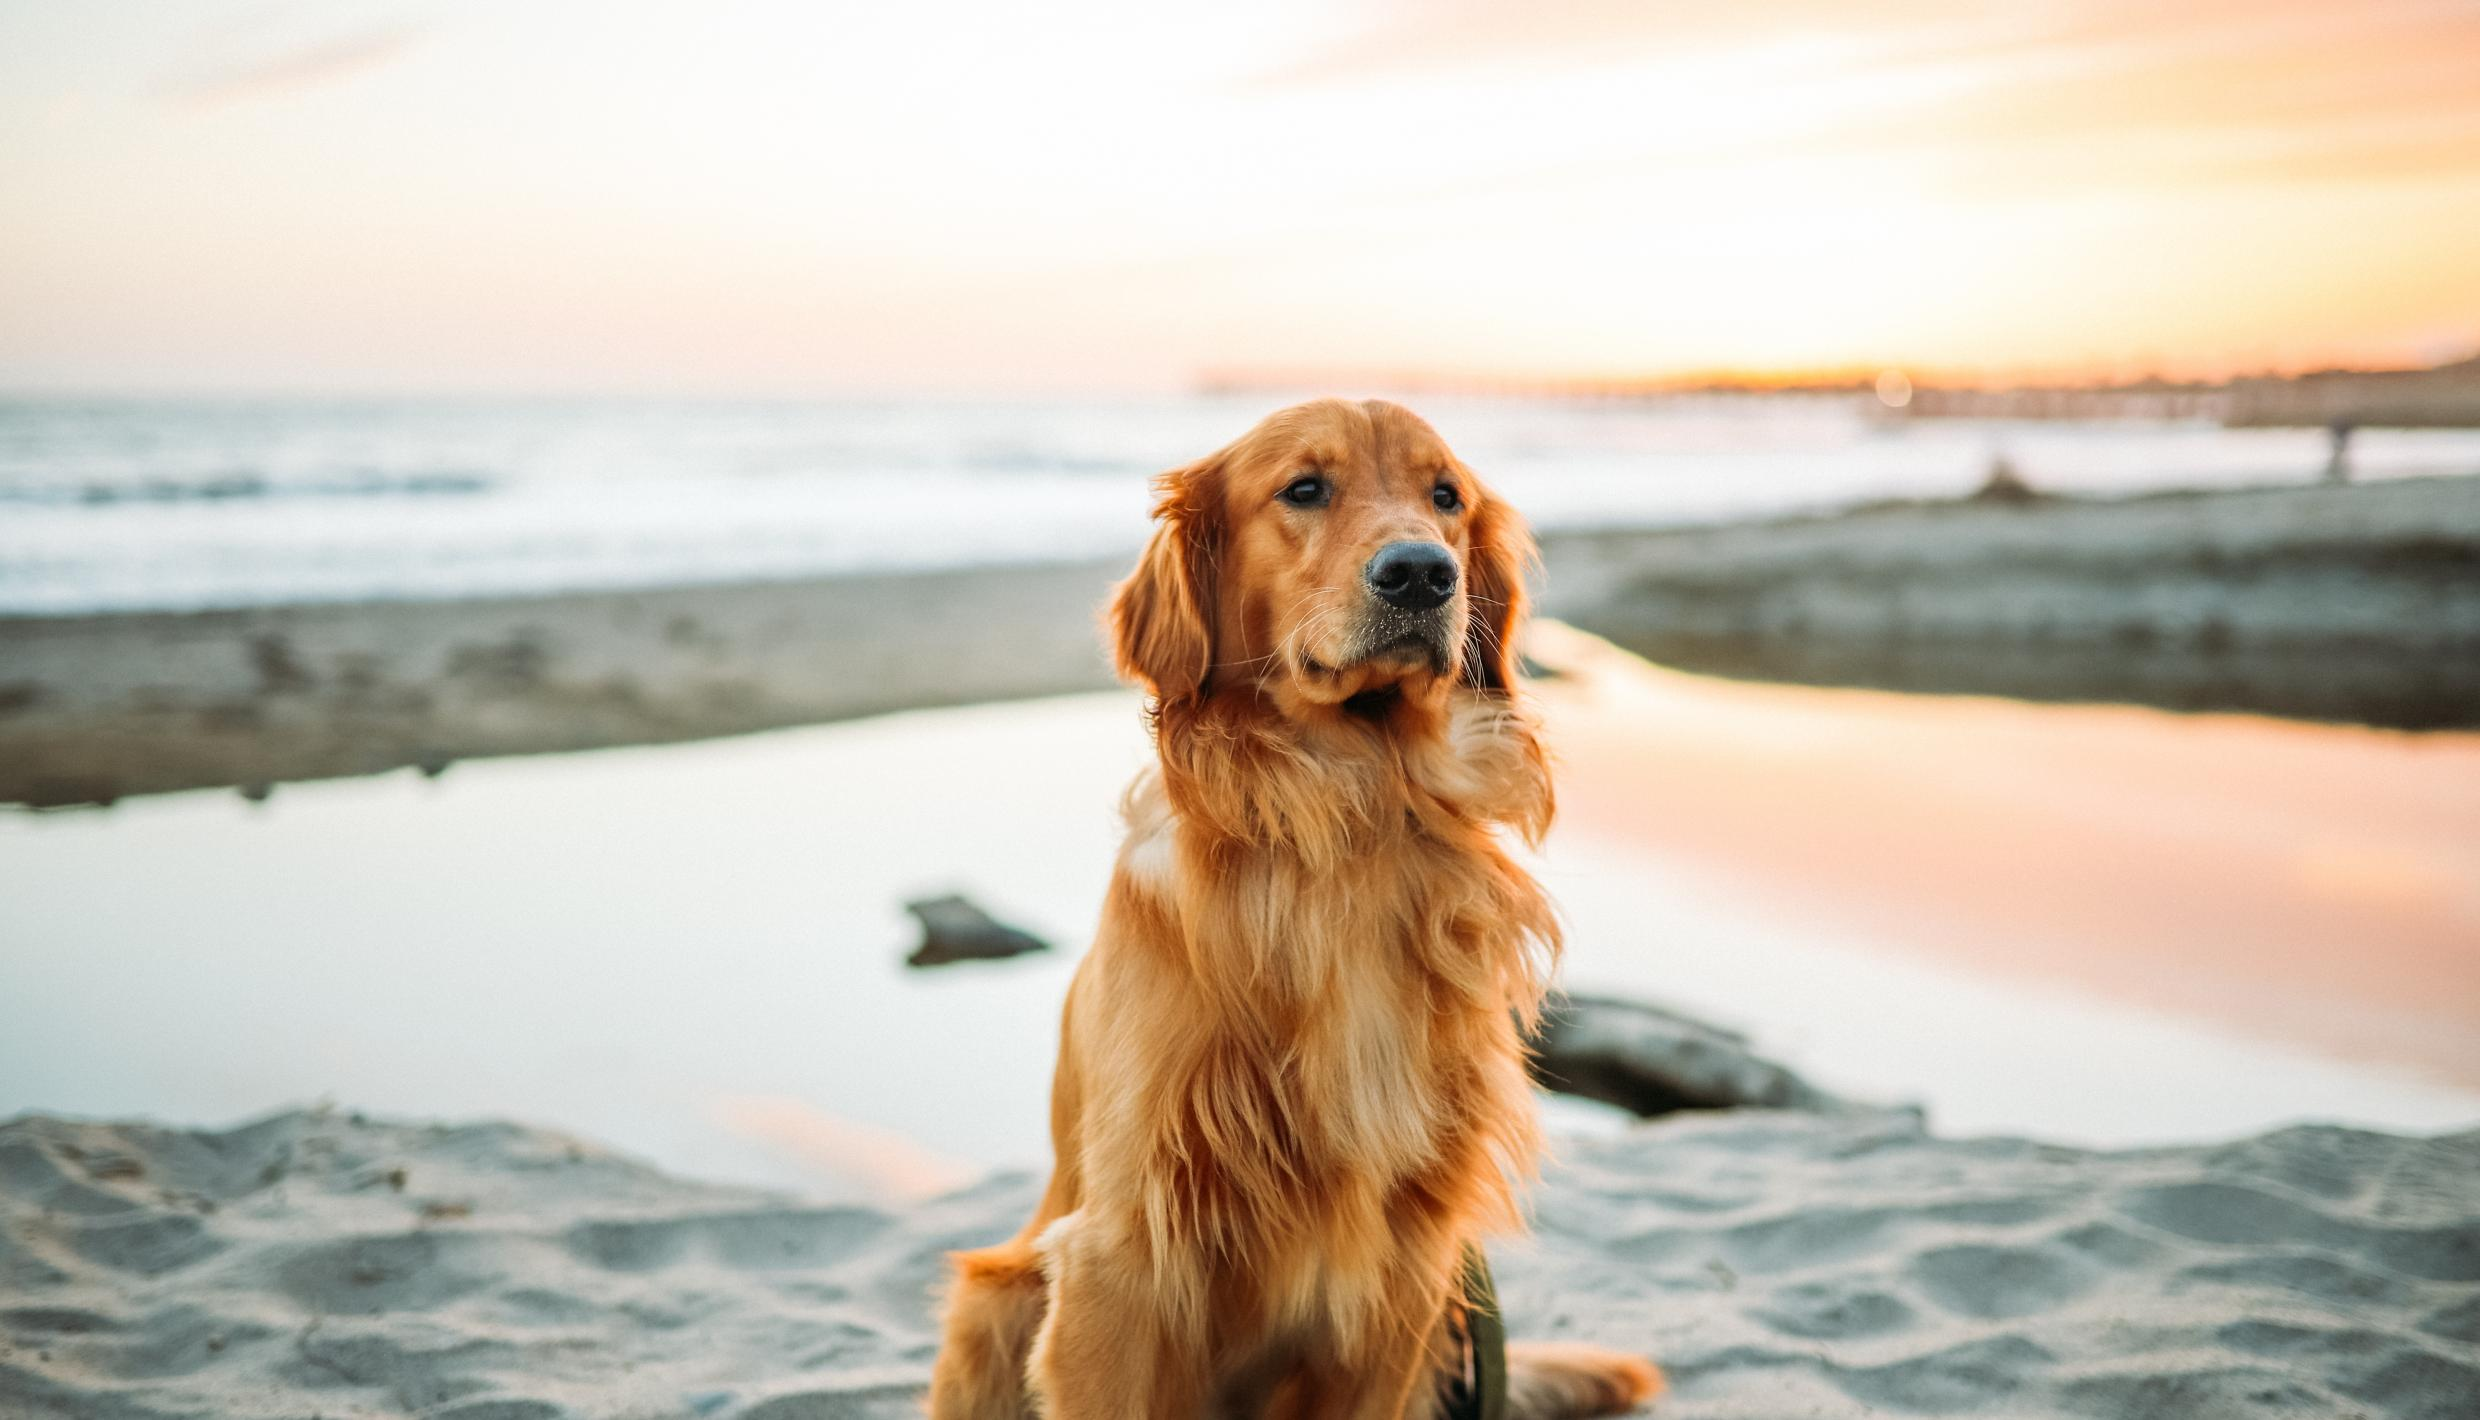 A golden retriever dog sitting on the beach.